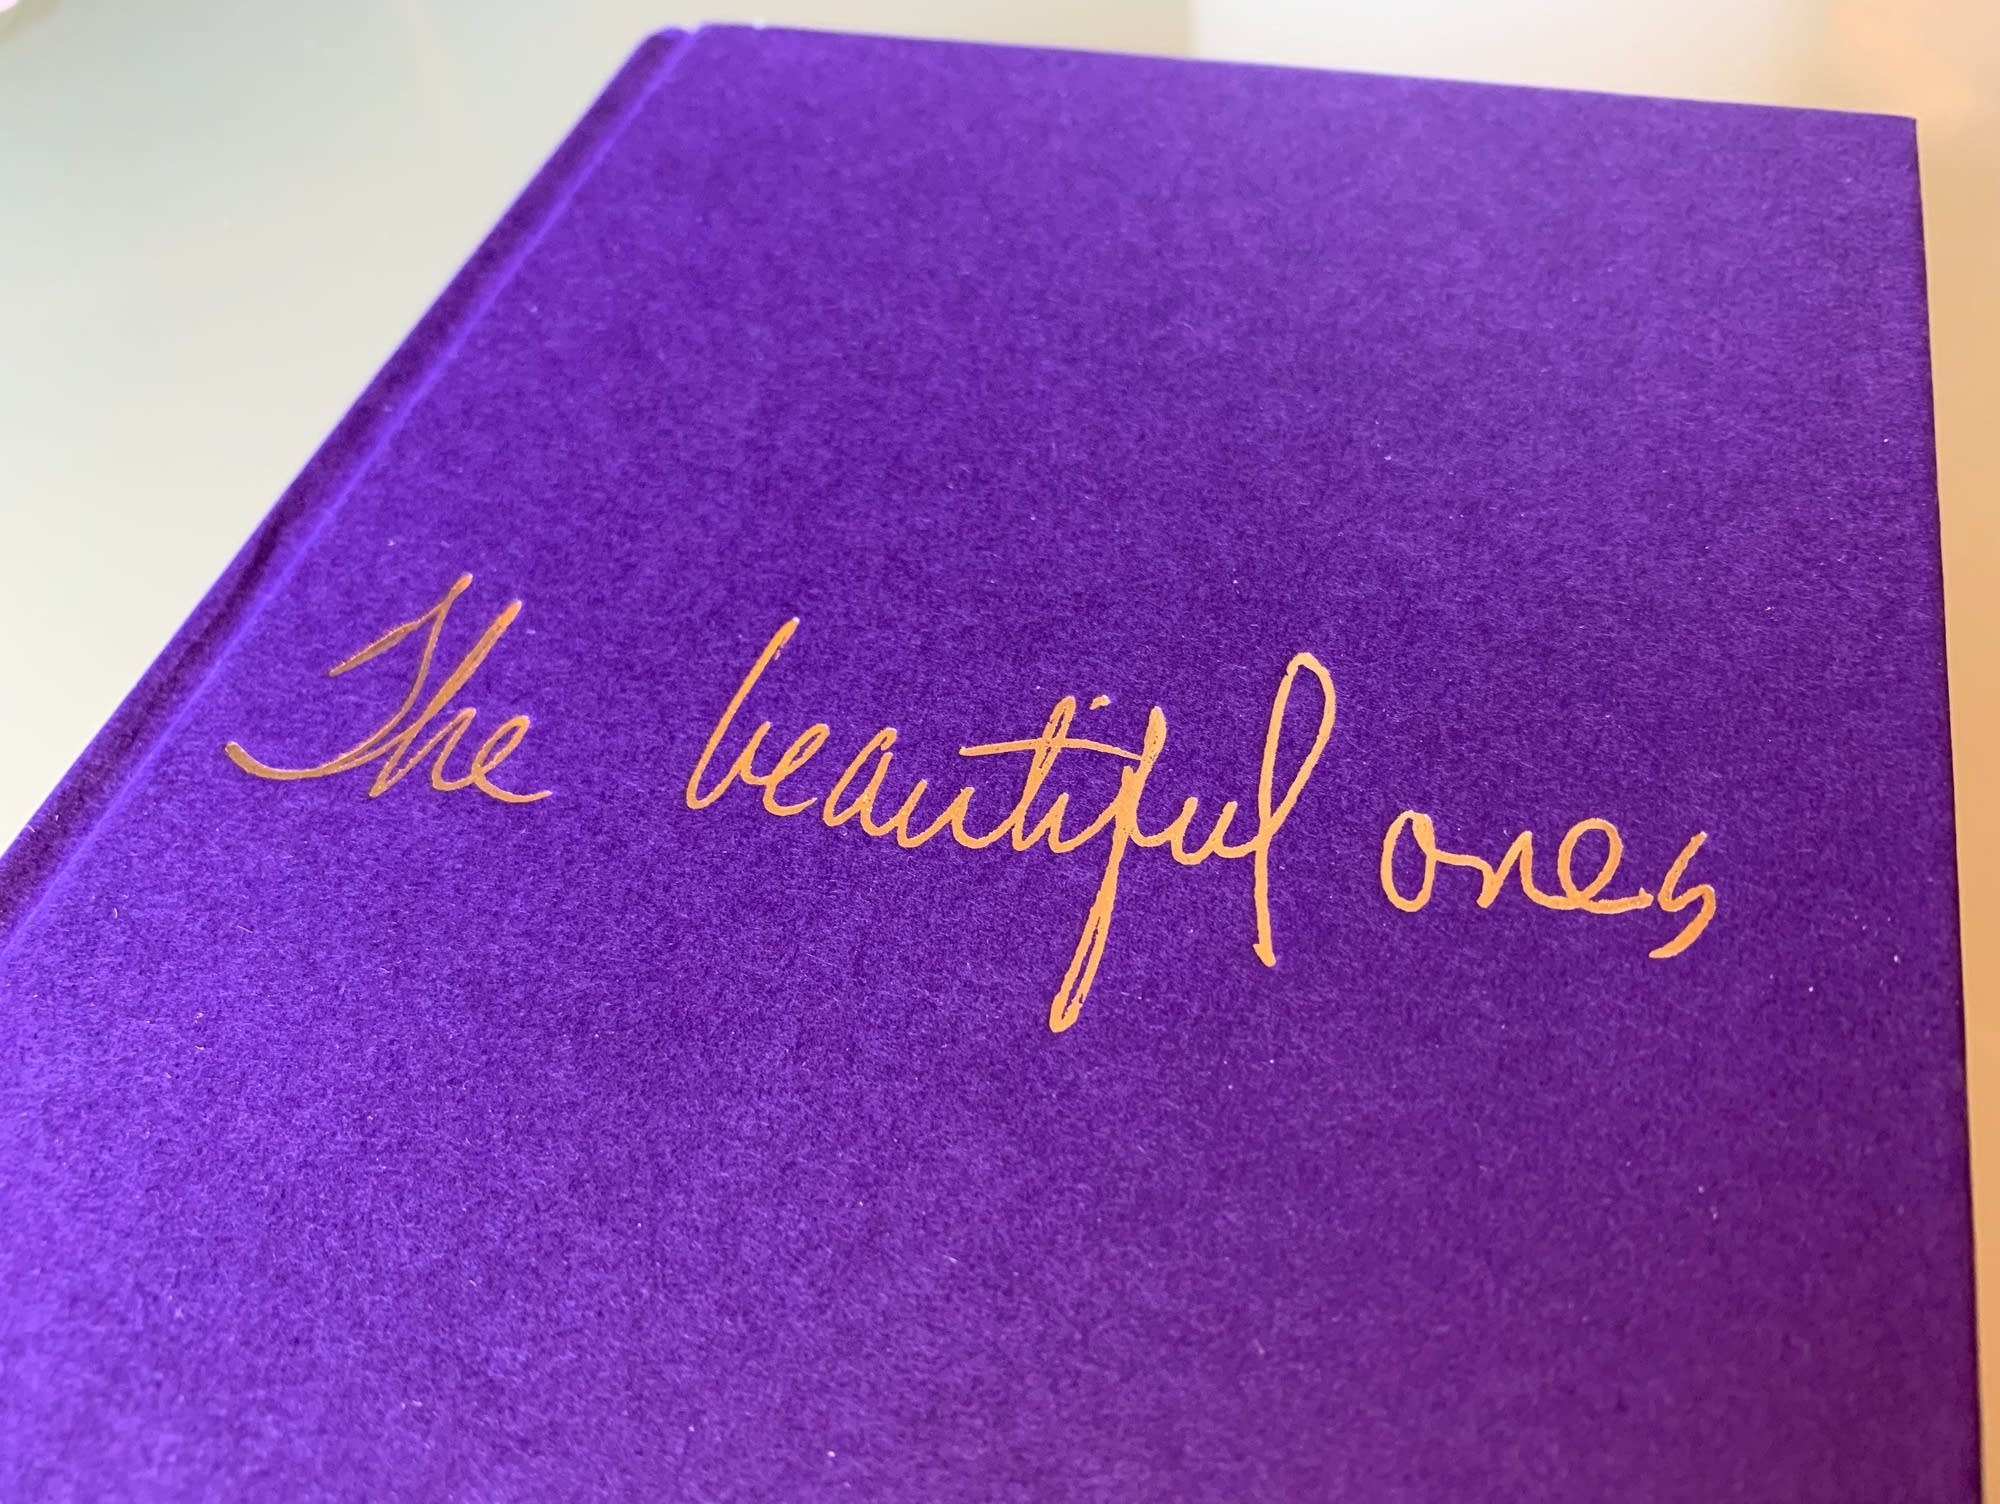 Prince's book 'The Beautiful Ones' (cover).